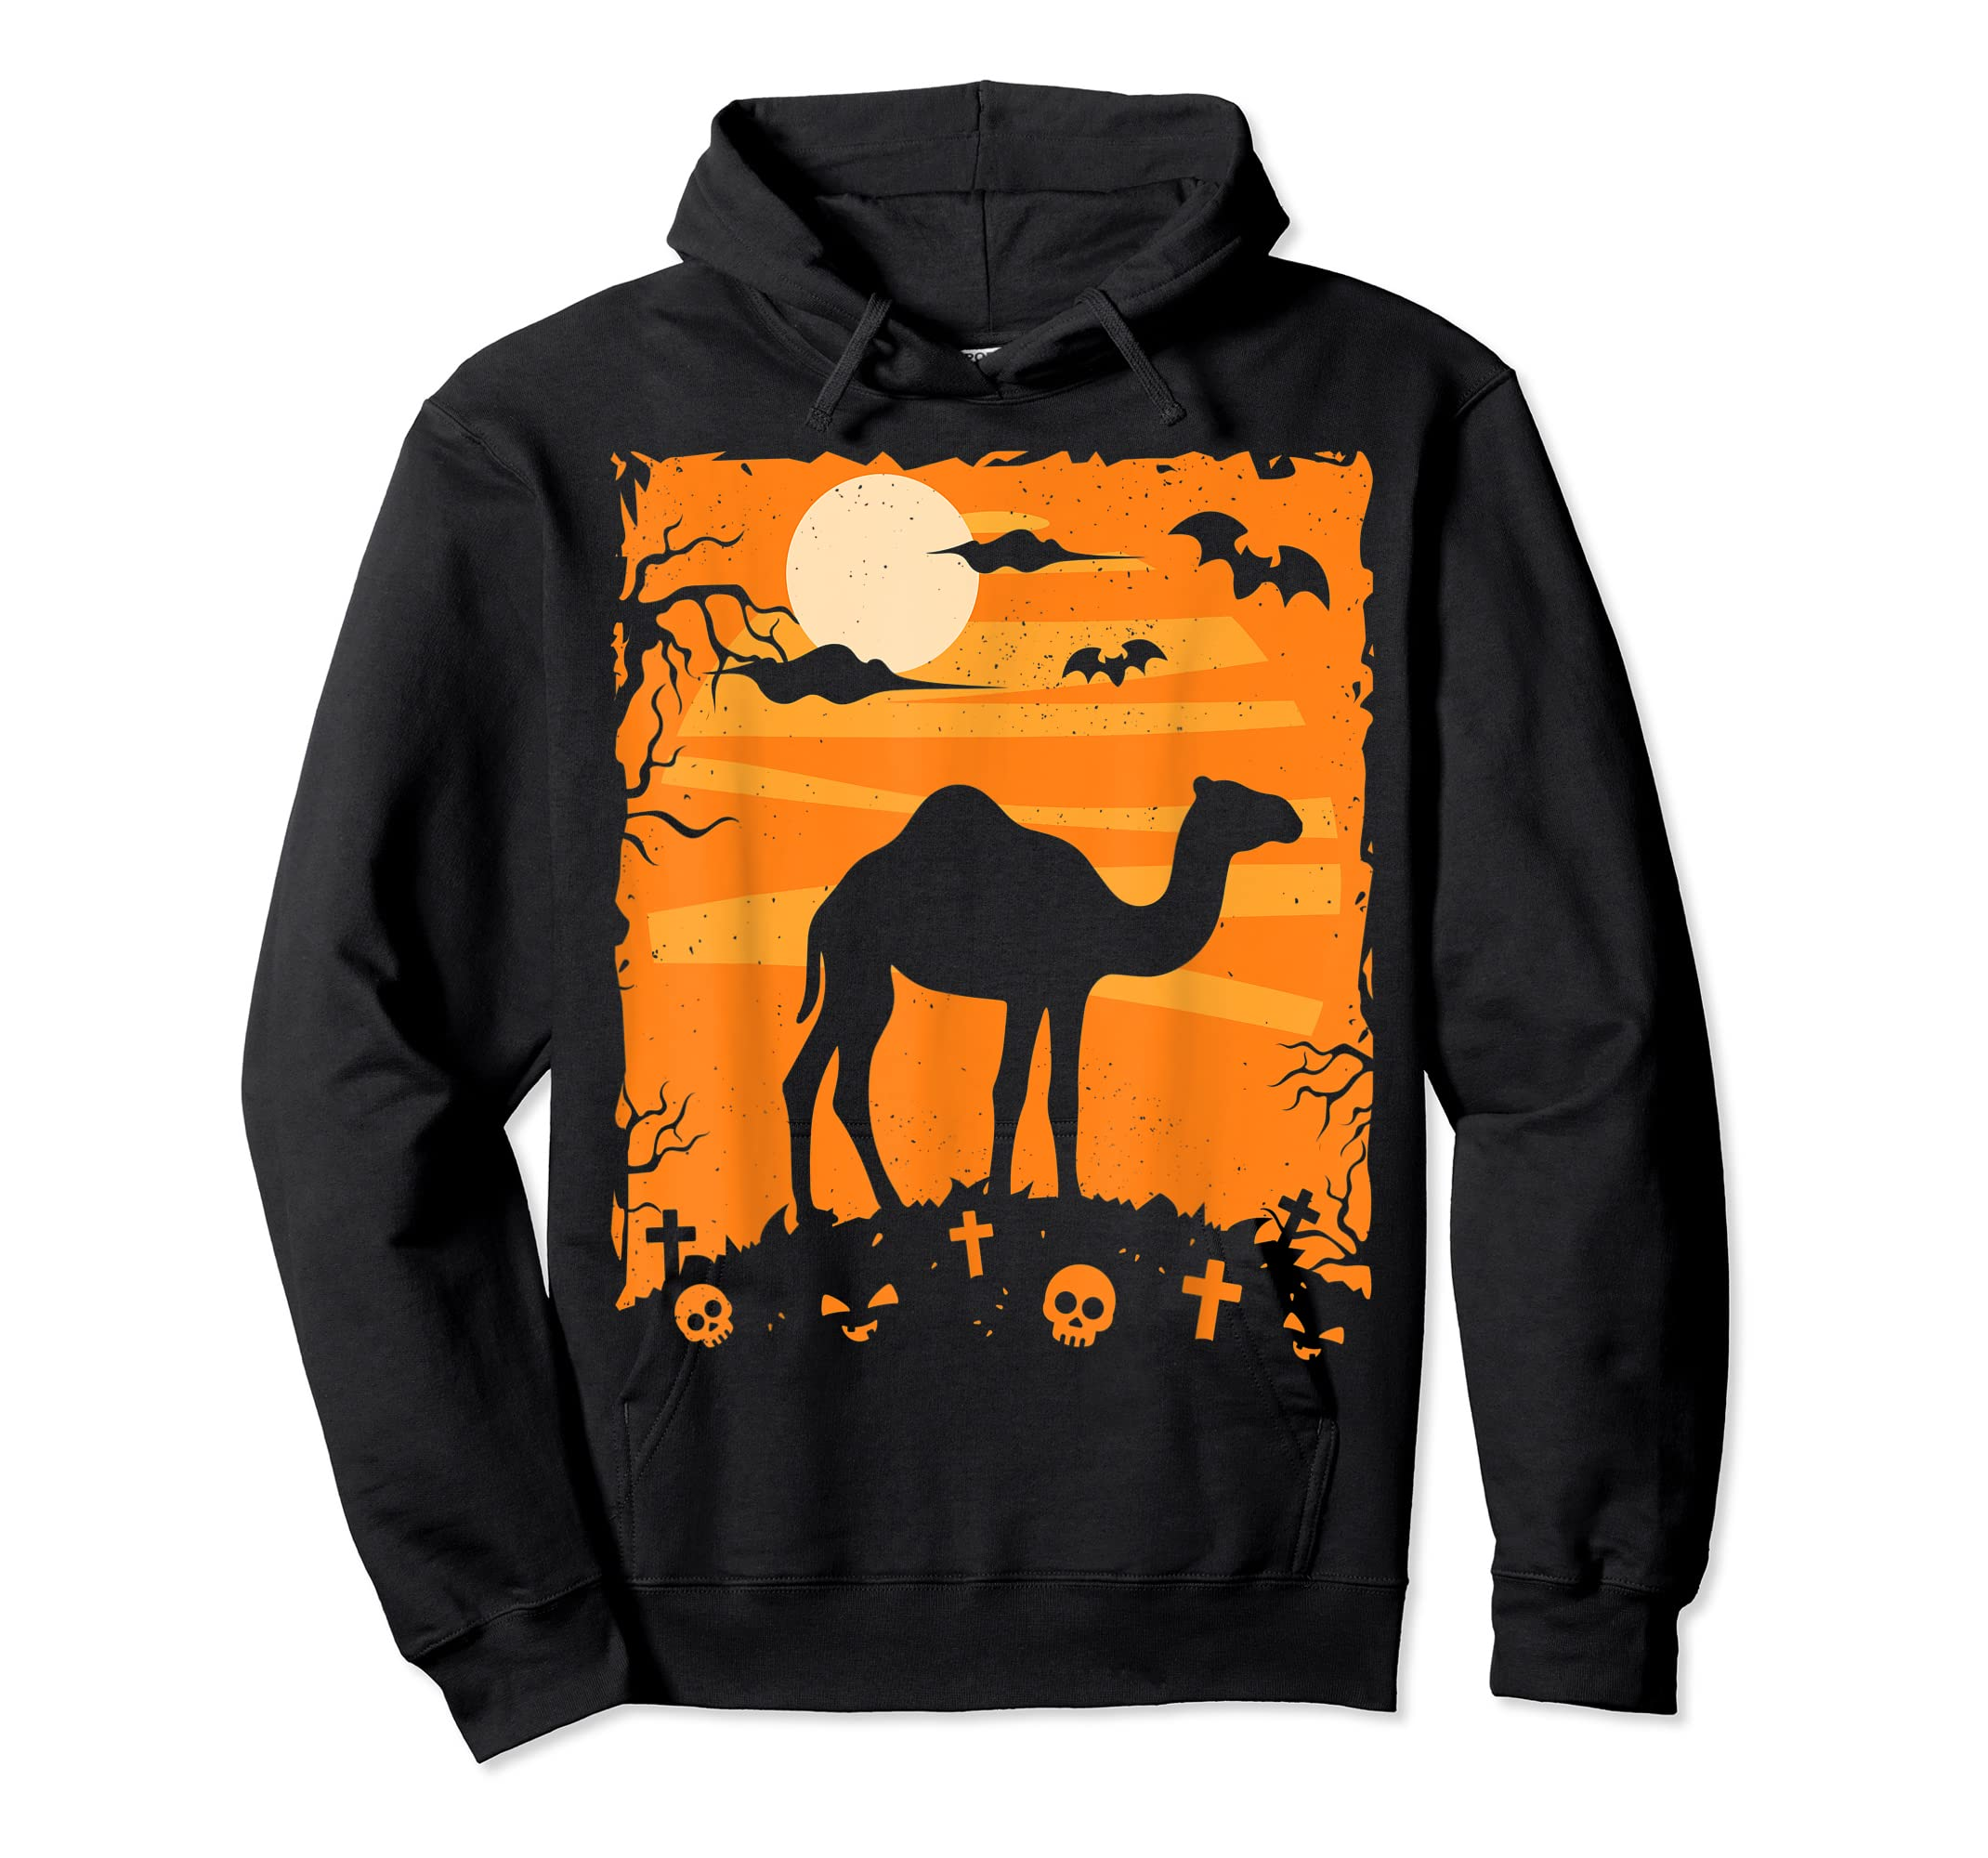 Camel Halloween Costume Animal Funny Pumpkin Outfit Gift T-Shirt-Hoodie-Black